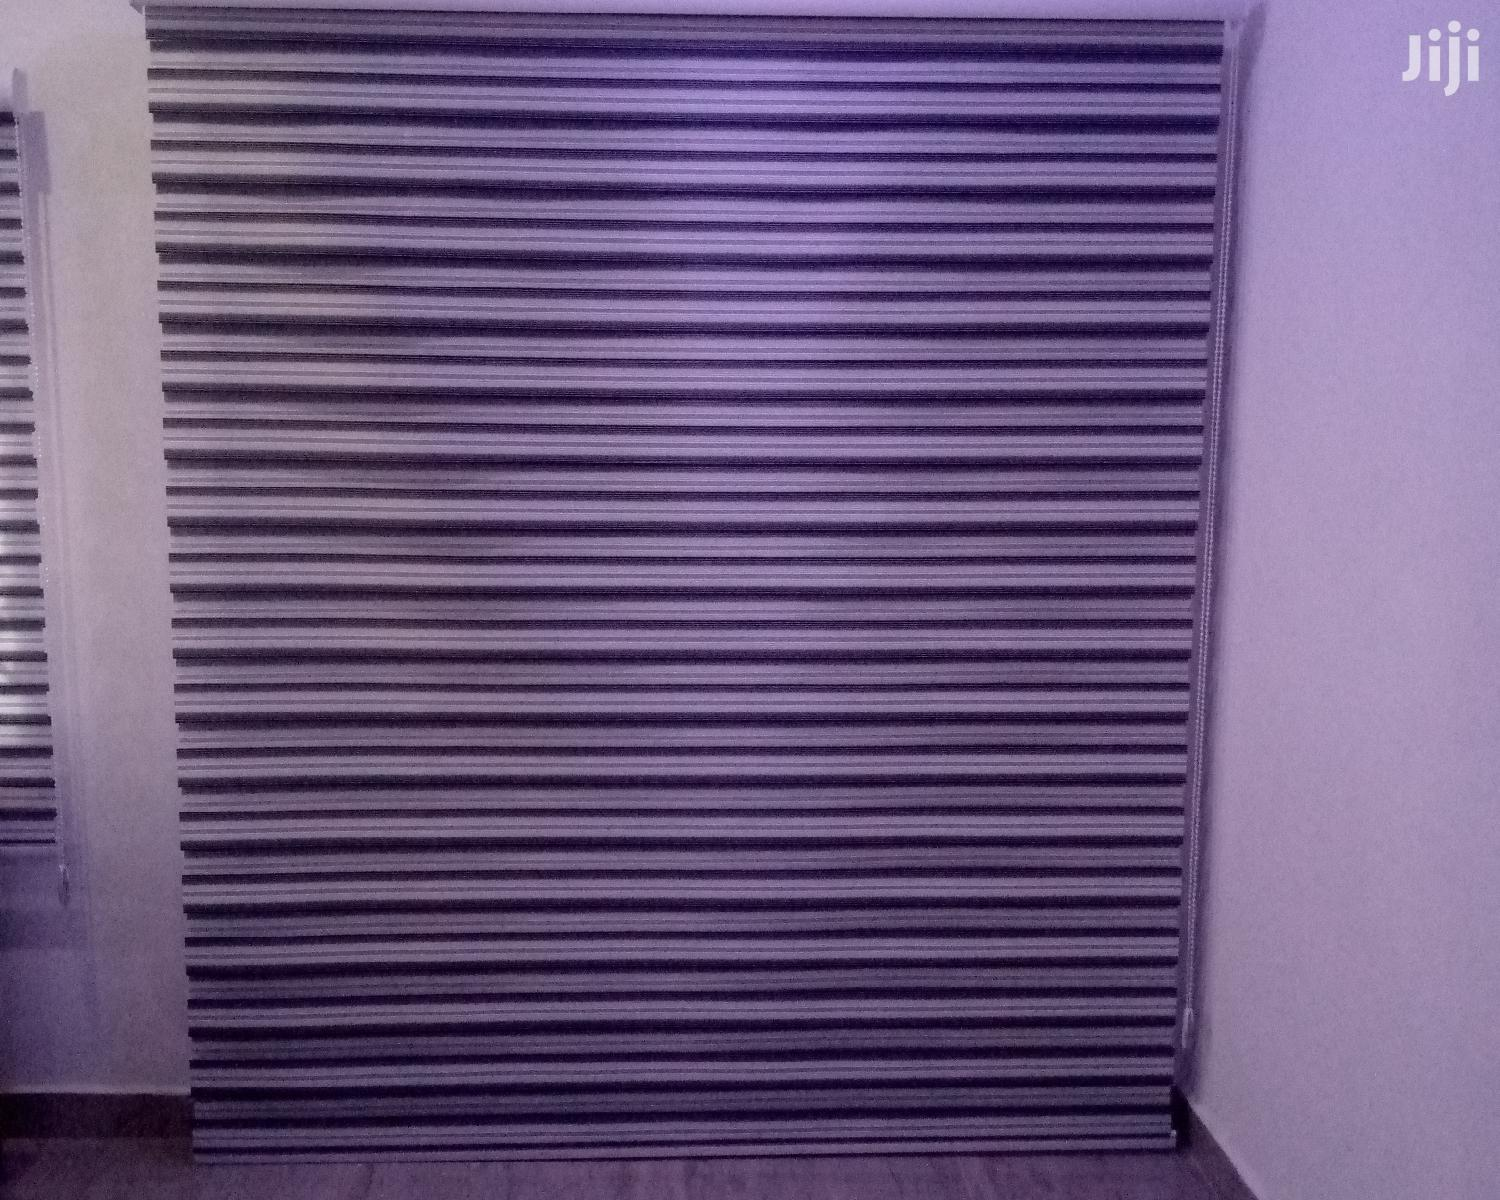 Black and White Stripes Zebra Blinds | Home Accessories for sale in Accra Metropolitan, Greater Accra, Ghana